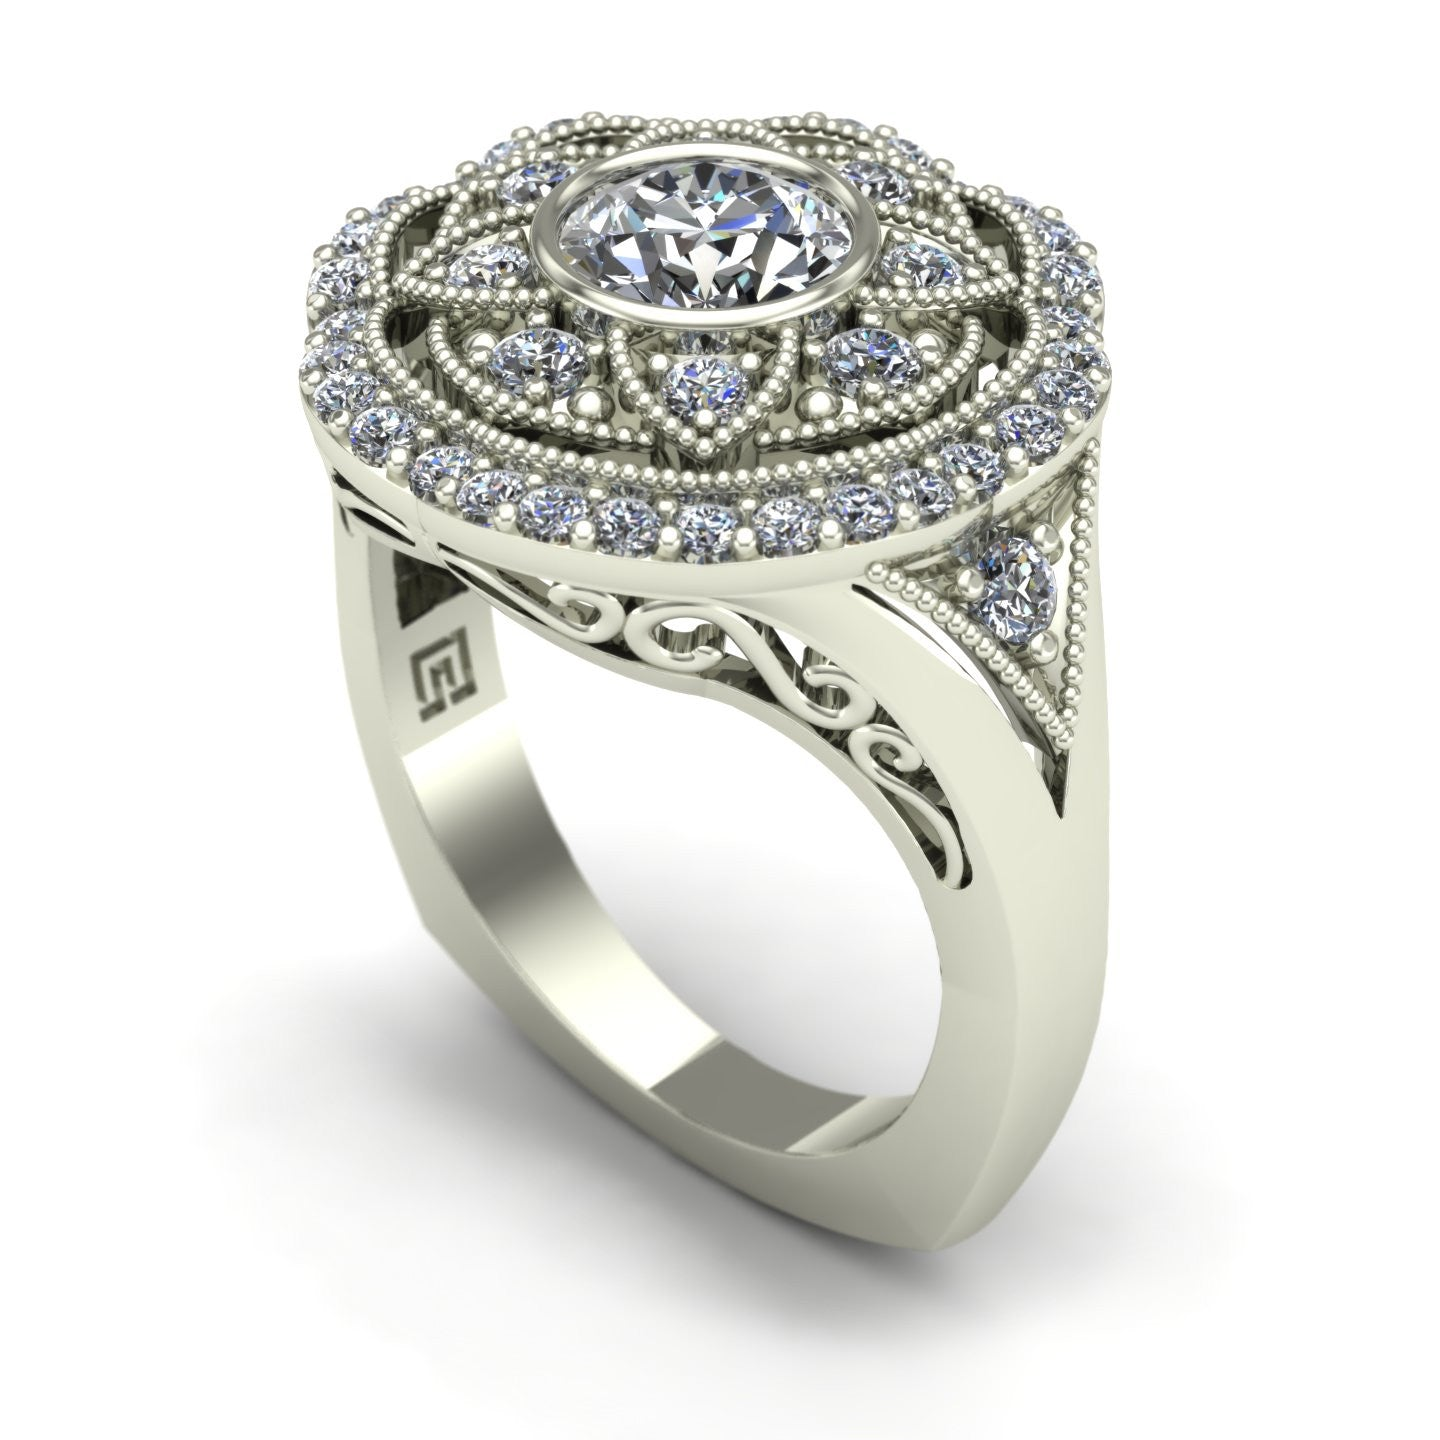 Diamond right hand ring with a vintage look in 14k white gold